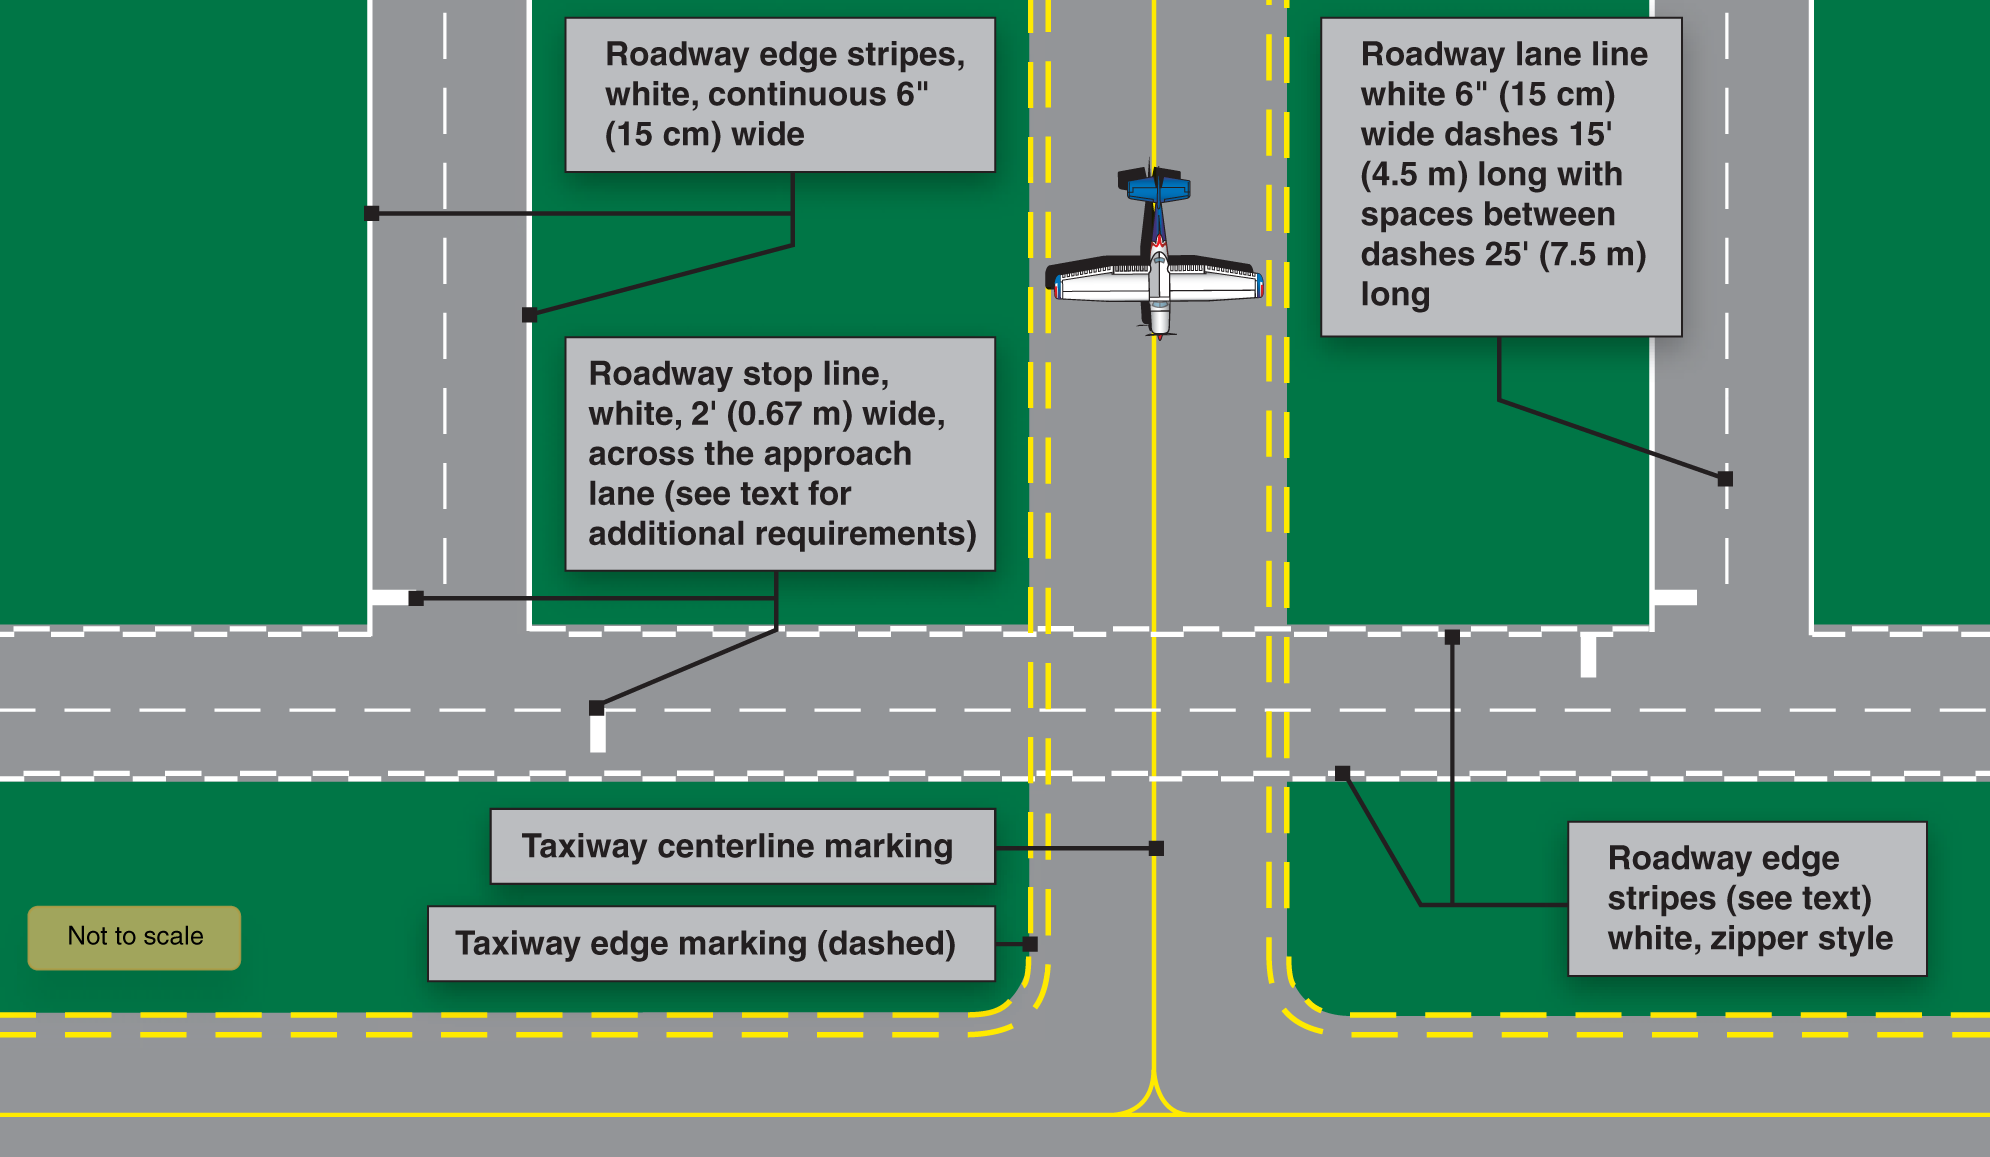 Figure 2. Vehicle roadway markings.